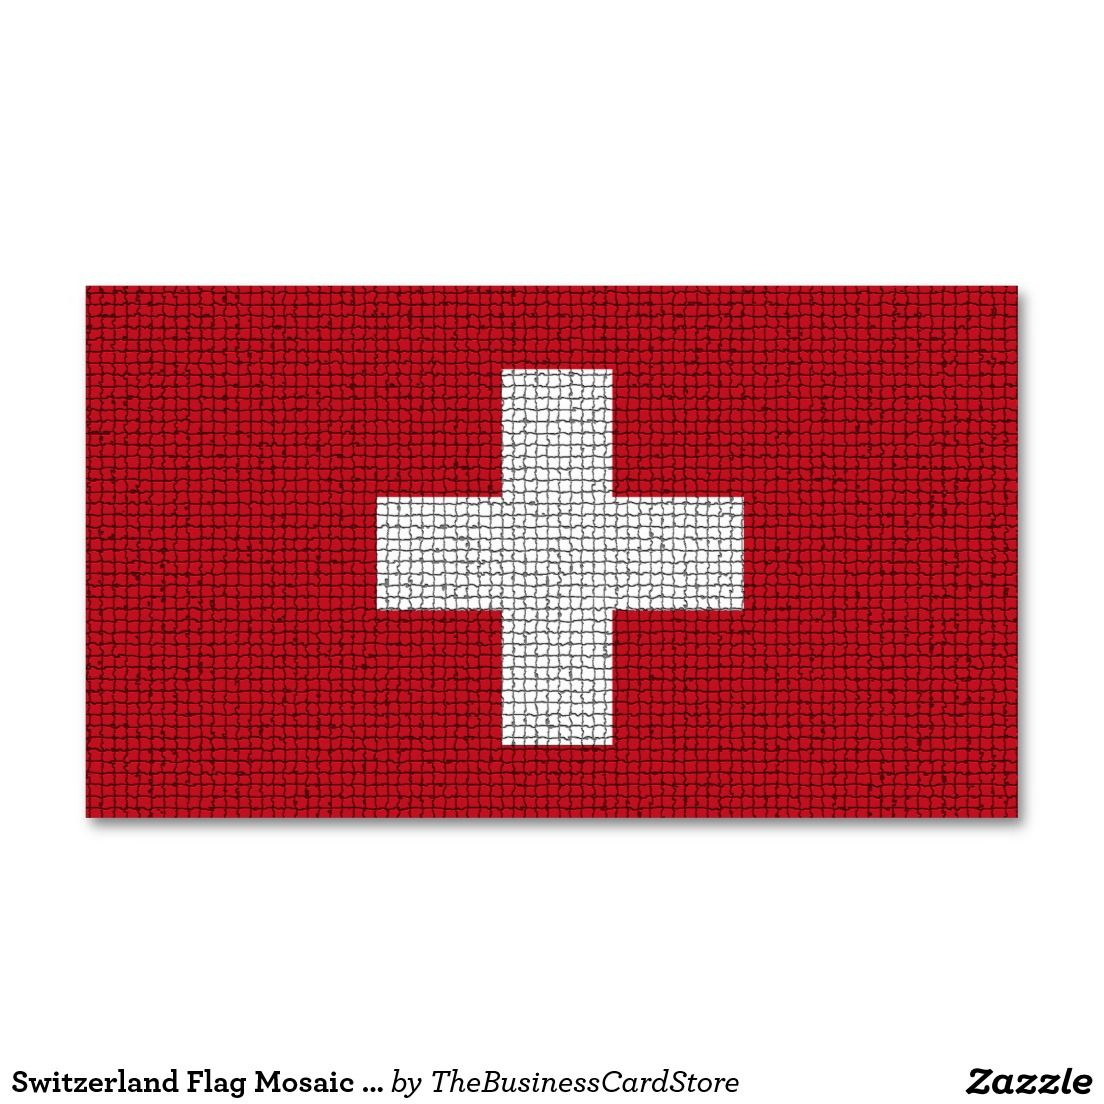 Switzerland flag mosaic tile effect business card world flags switzerland flag mosaic tile effect business card reheart Image collections